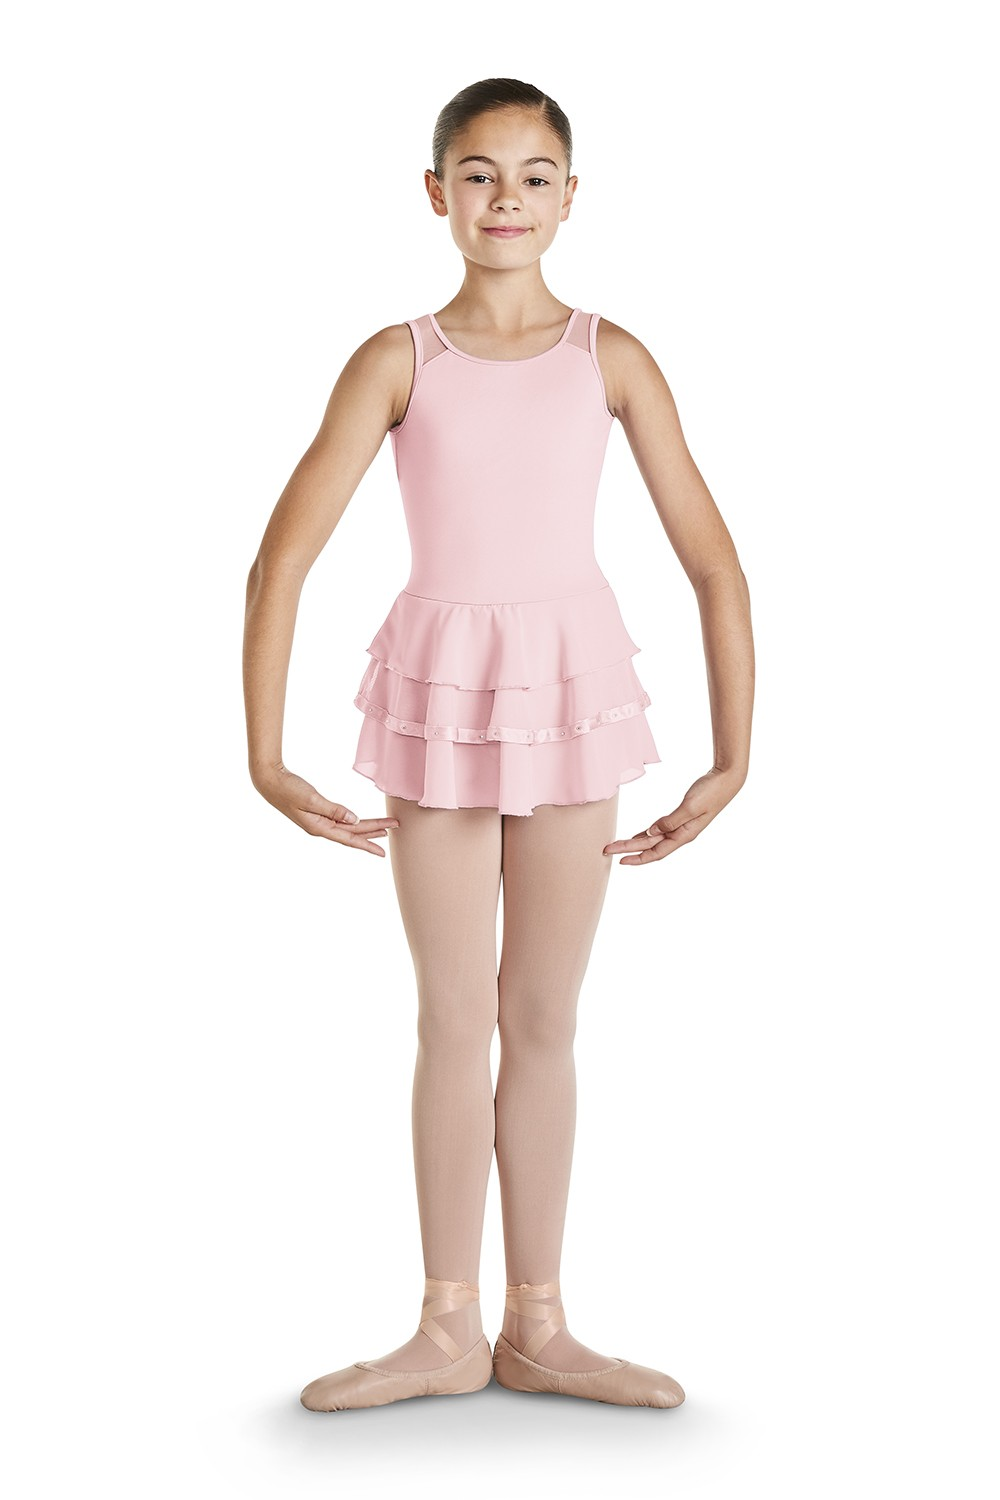 Zuri Children's Dance Leotards